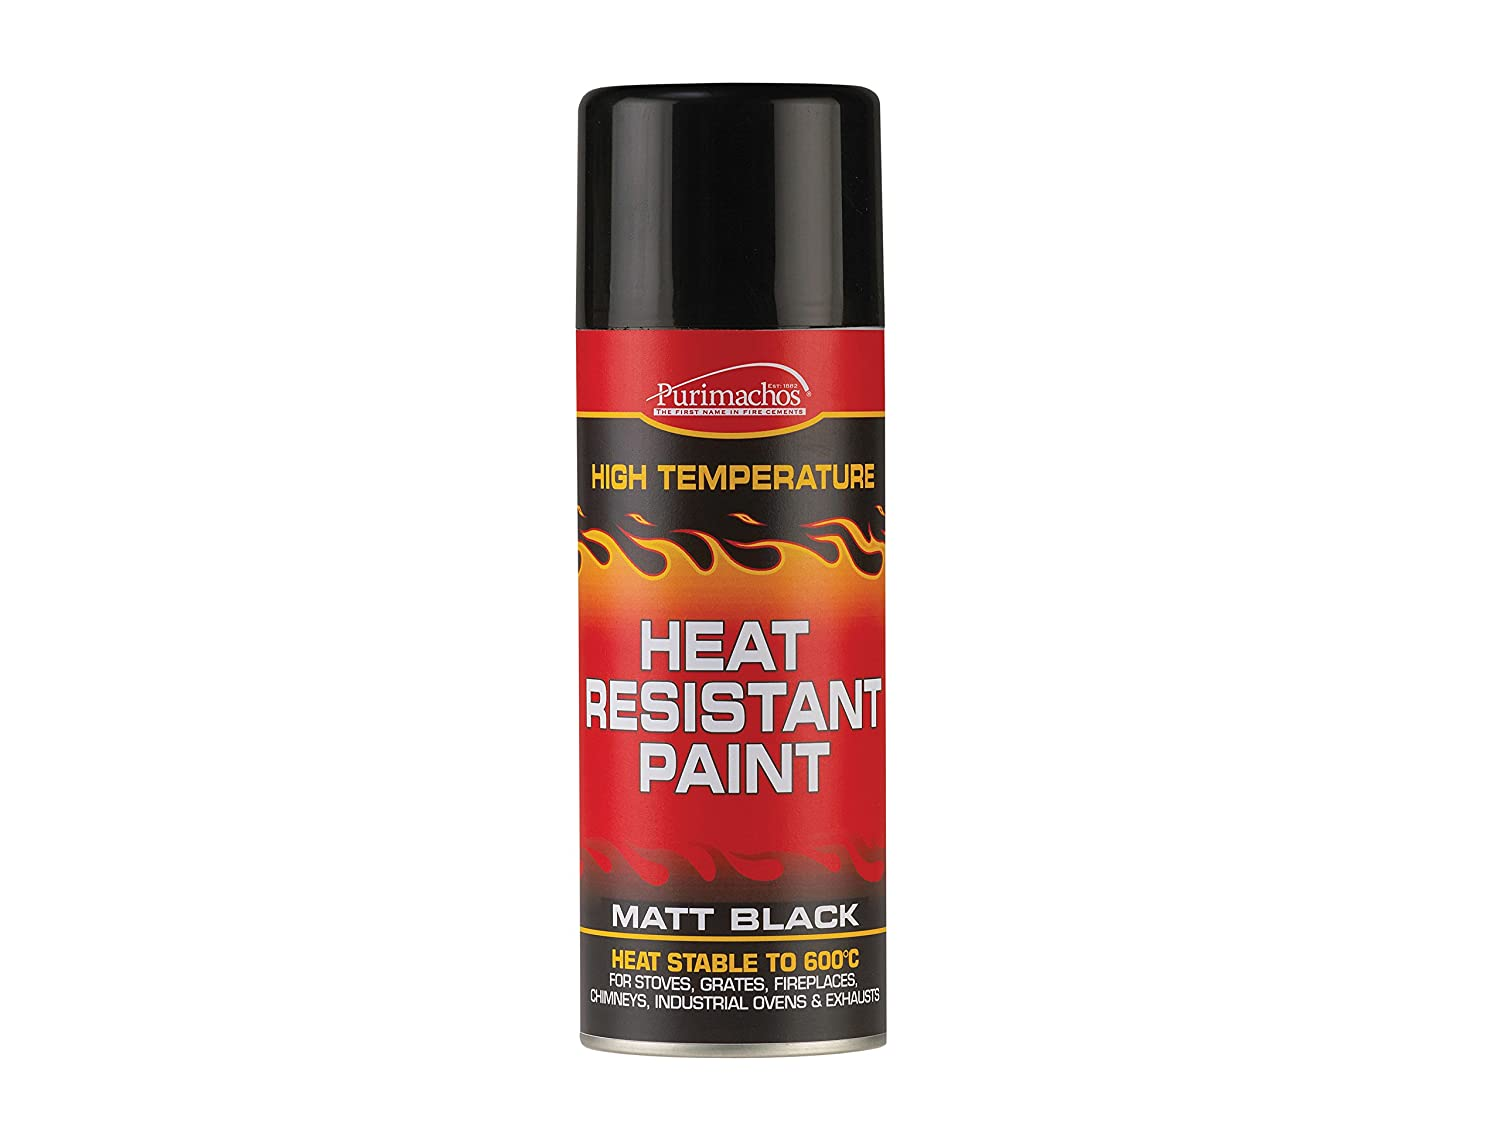 Free delivery and returns on all eligible orders. Shop Everbuild EVBPCHP125 125 ml Heat Resistant Paint - Matt Black.